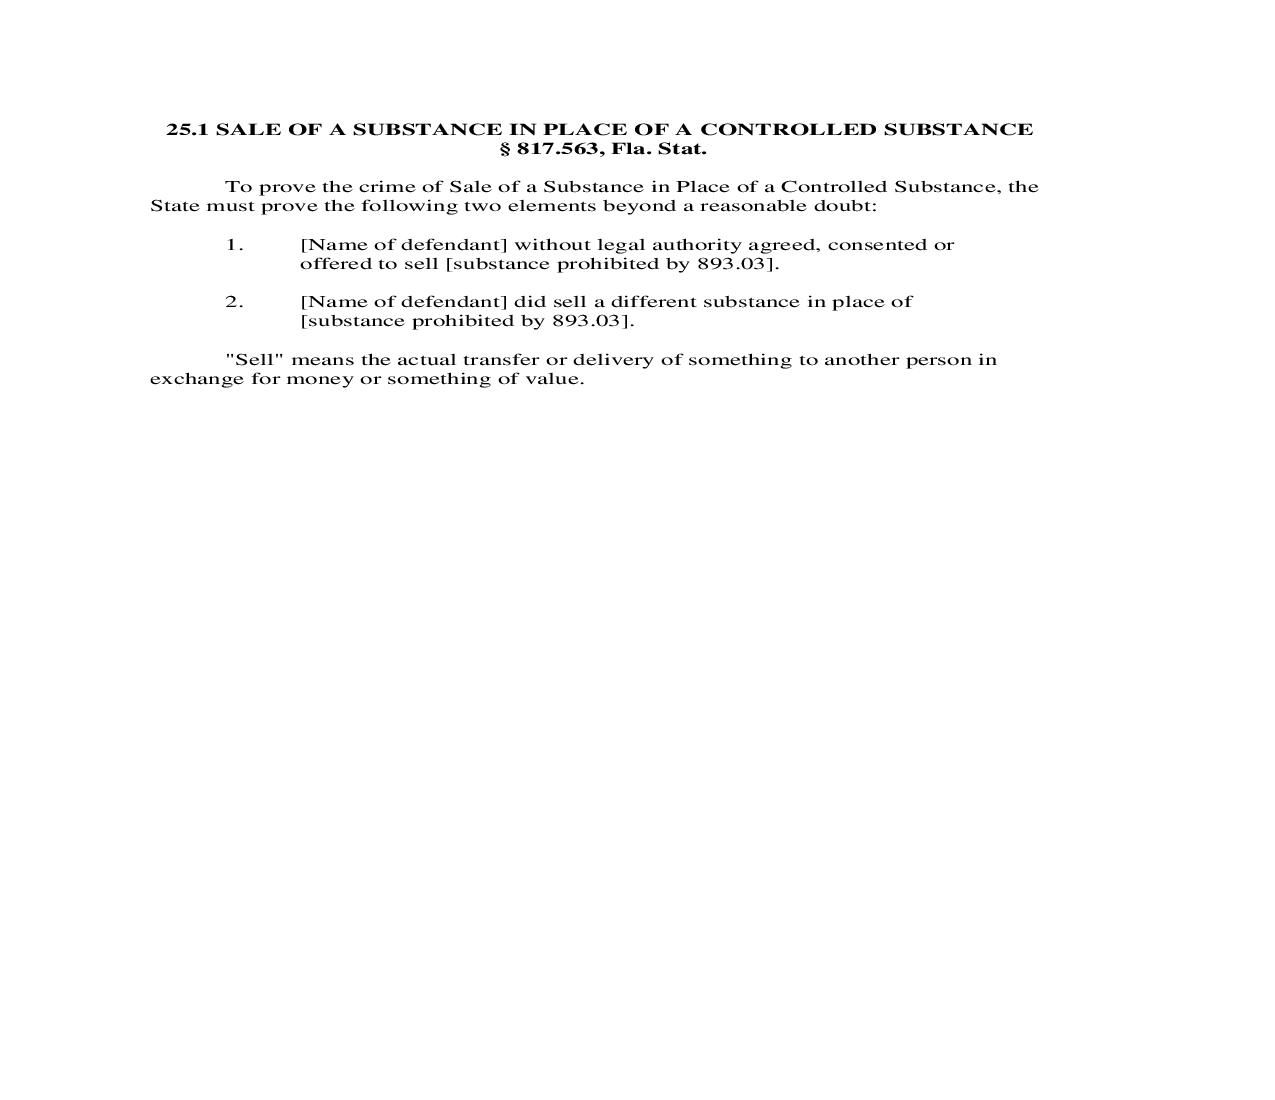 25.1. Sale Of A Substance In Place Of A Controlled Substance | Pdf Doc Docx | Florida_JI